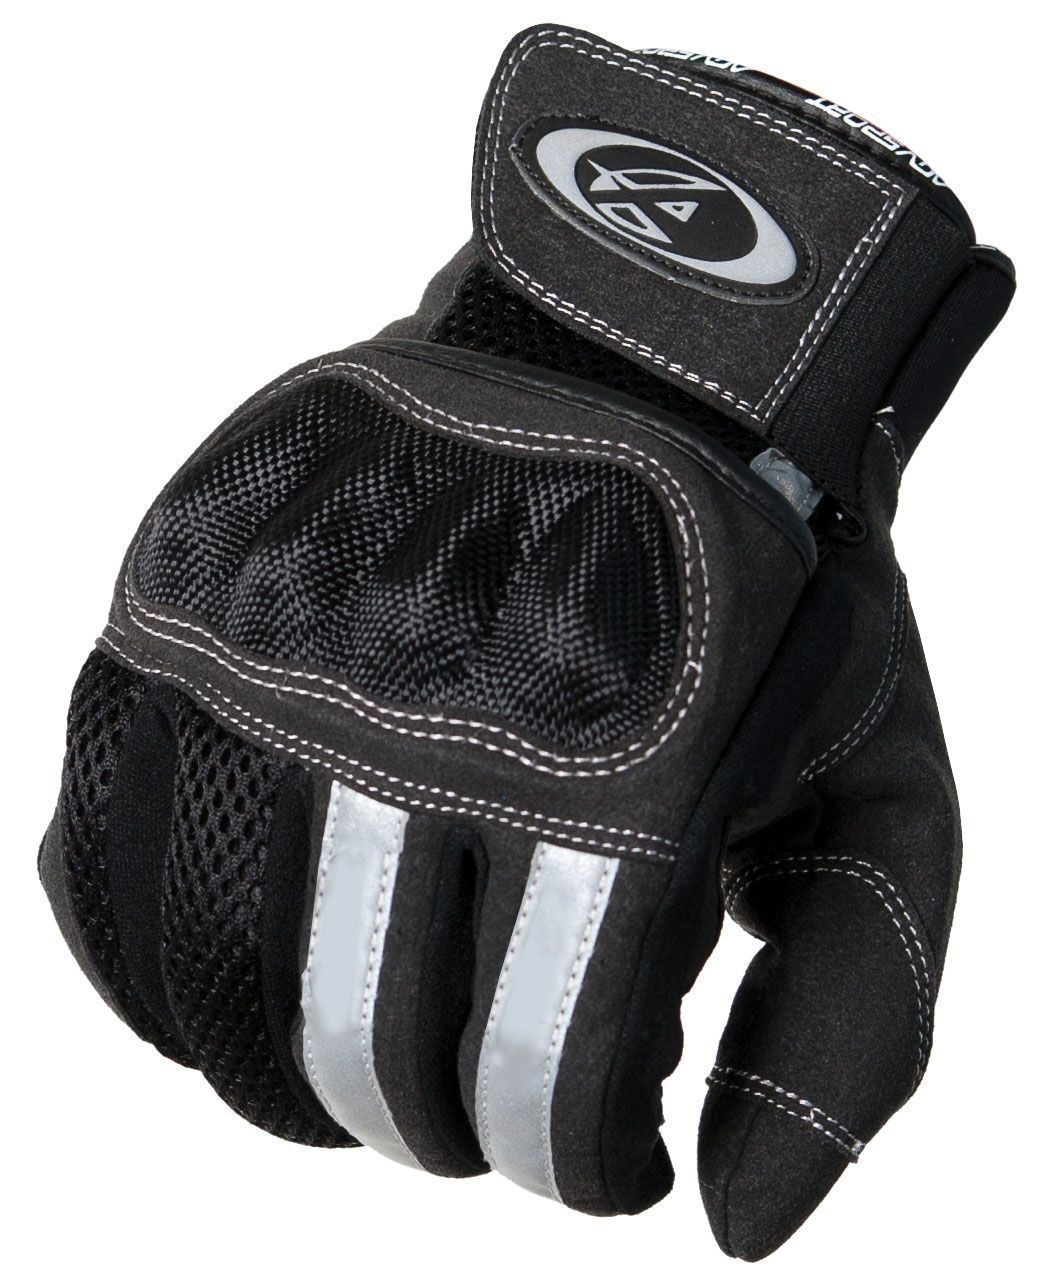 Motorcycle gloves mesh - New Agvsport Mercury Summer Motorcycle Gloves Black Knuckle Protection Mesh